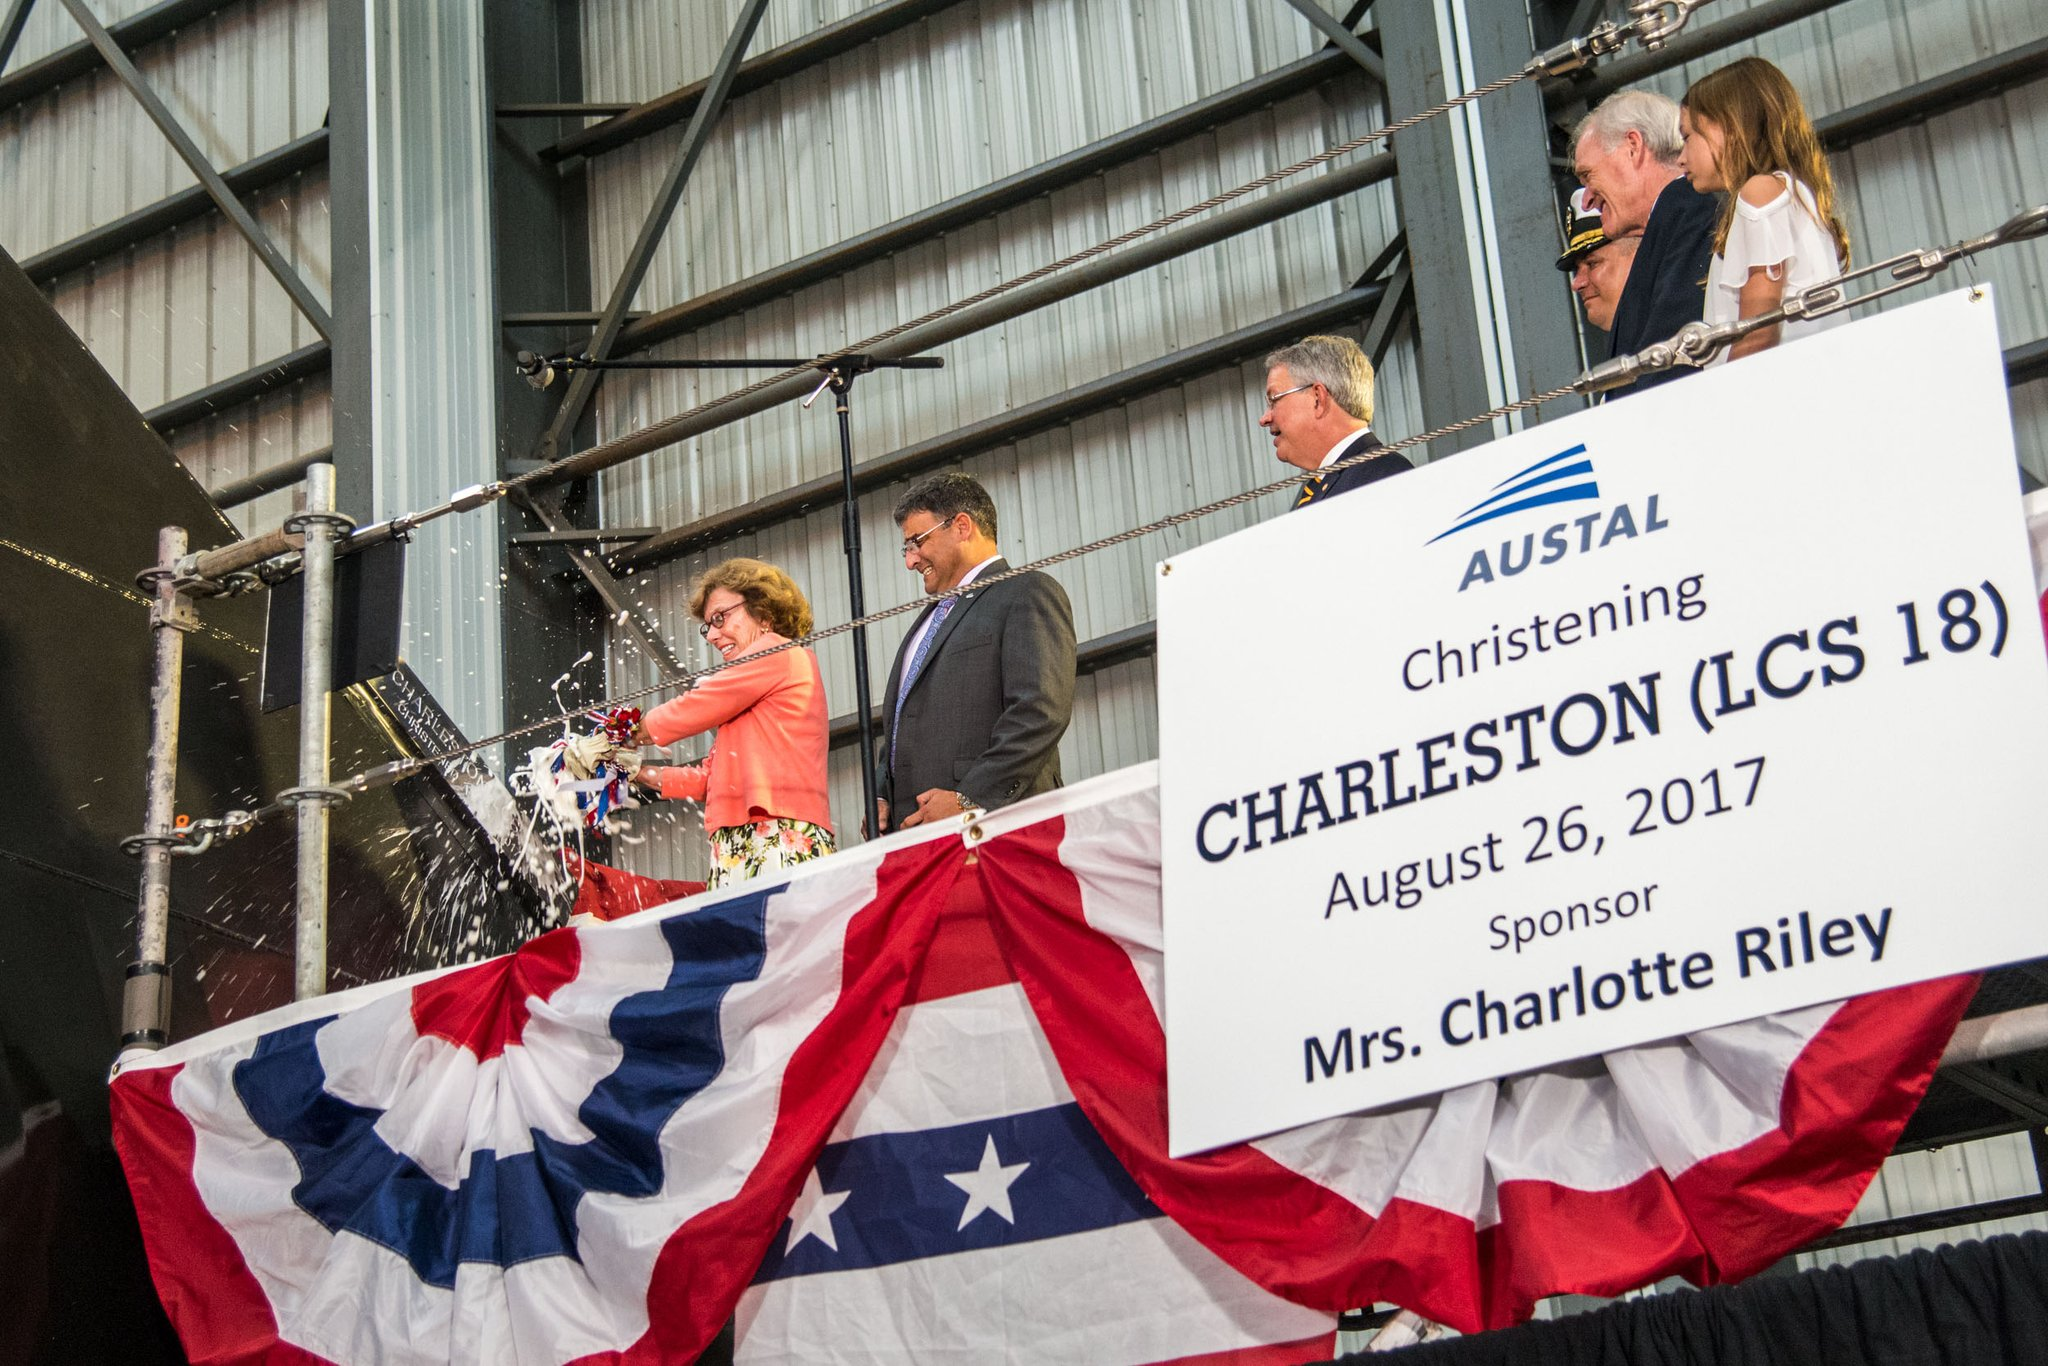 LCS 18 CHARLESTON CHRISTENING 1_401246